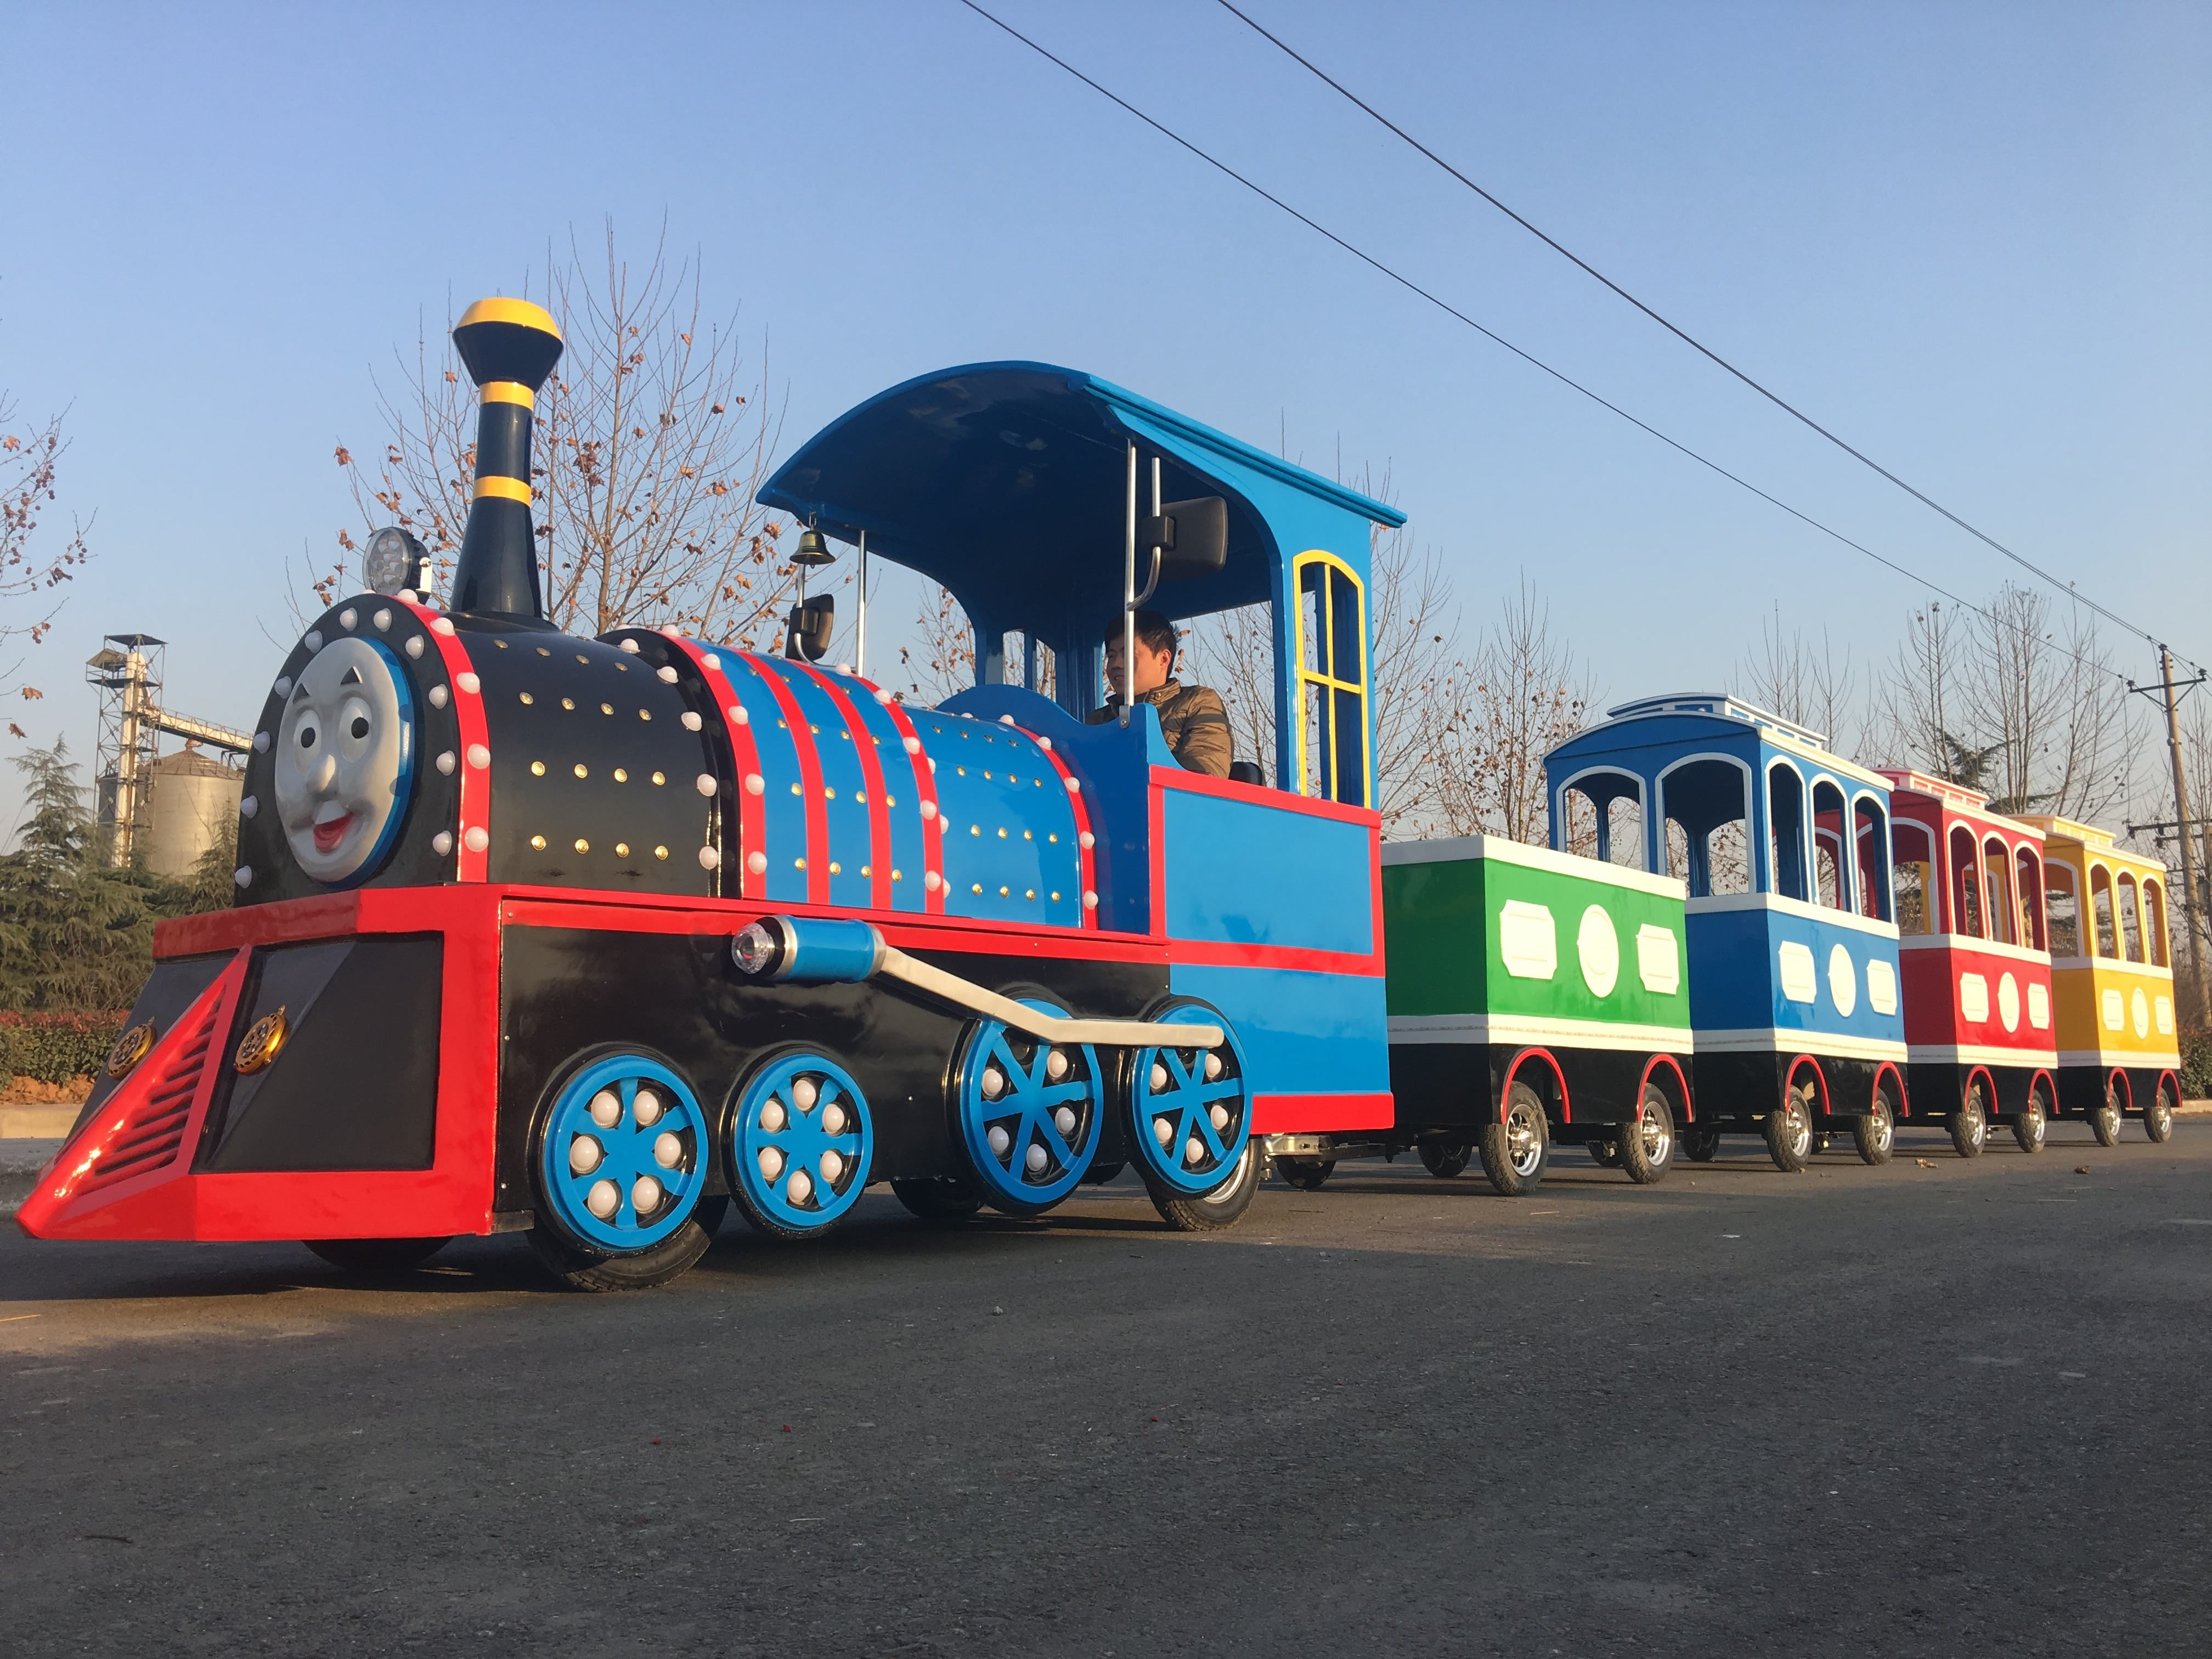 Super Fun Thomas Mini Electric Kids Ride Indoor Mall Train Trackless For Sale Trains For Sale Model Trains Train